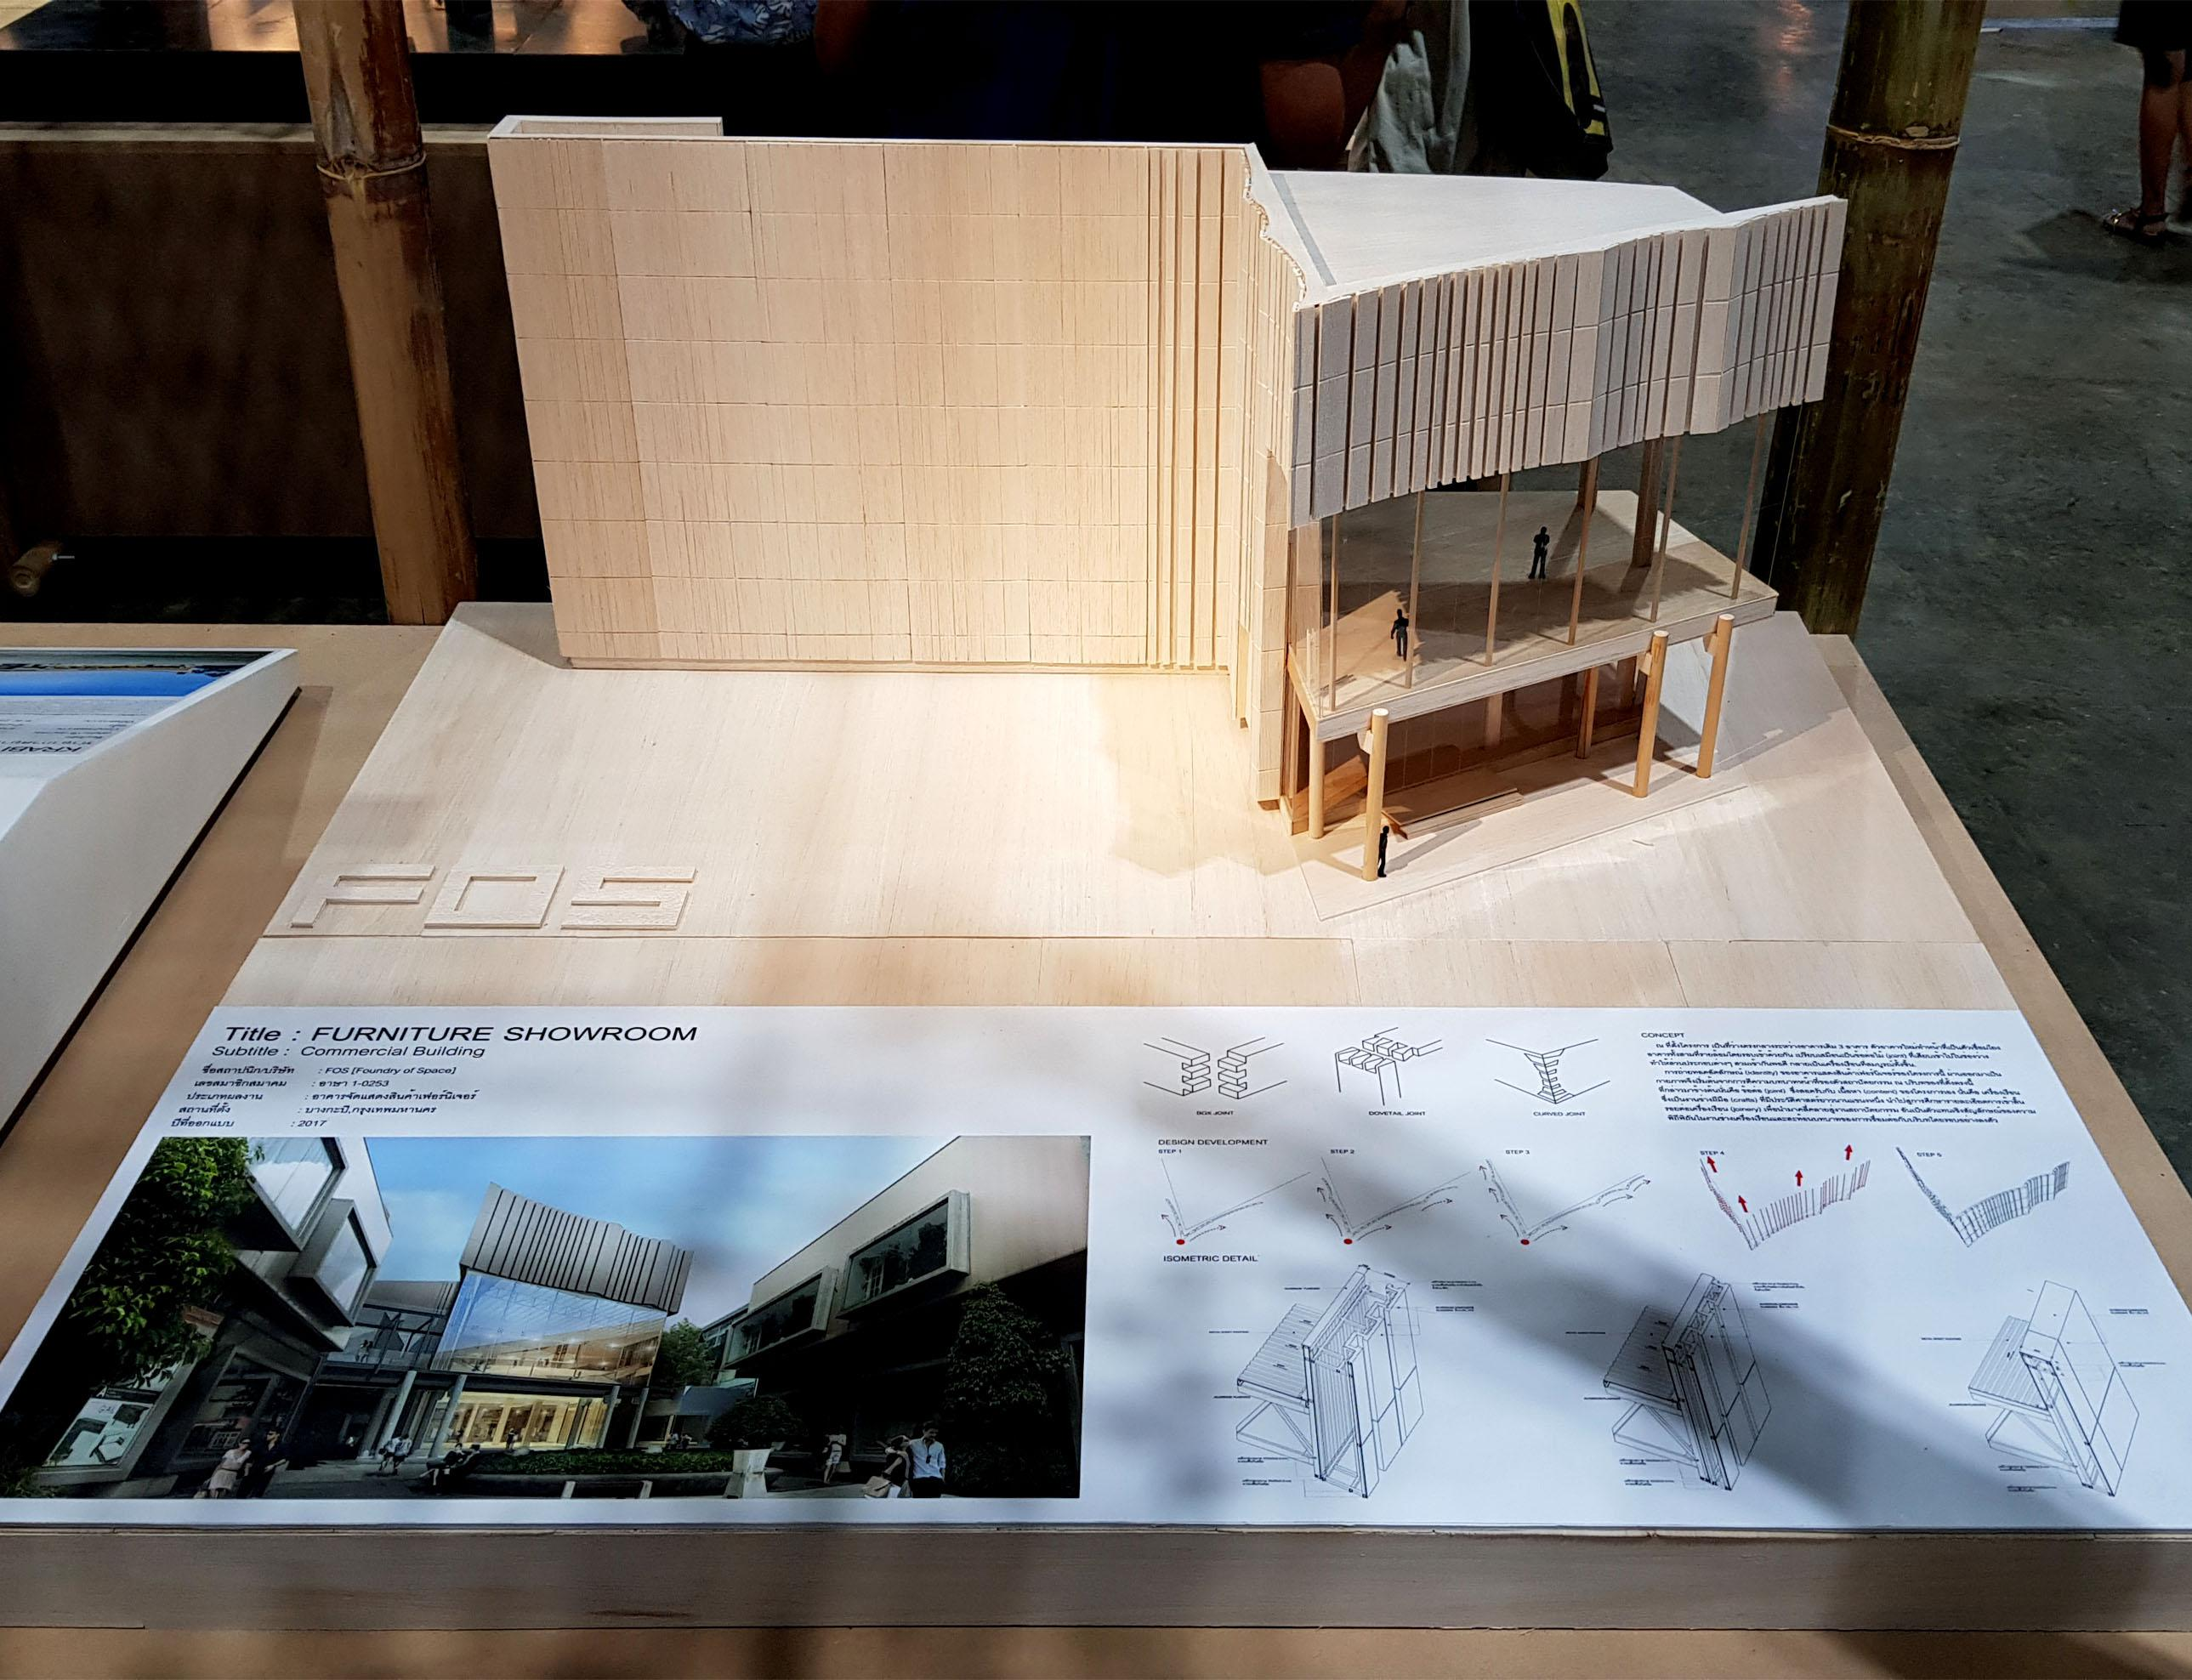 FOS's Project exhibited in Architect'18 Expo